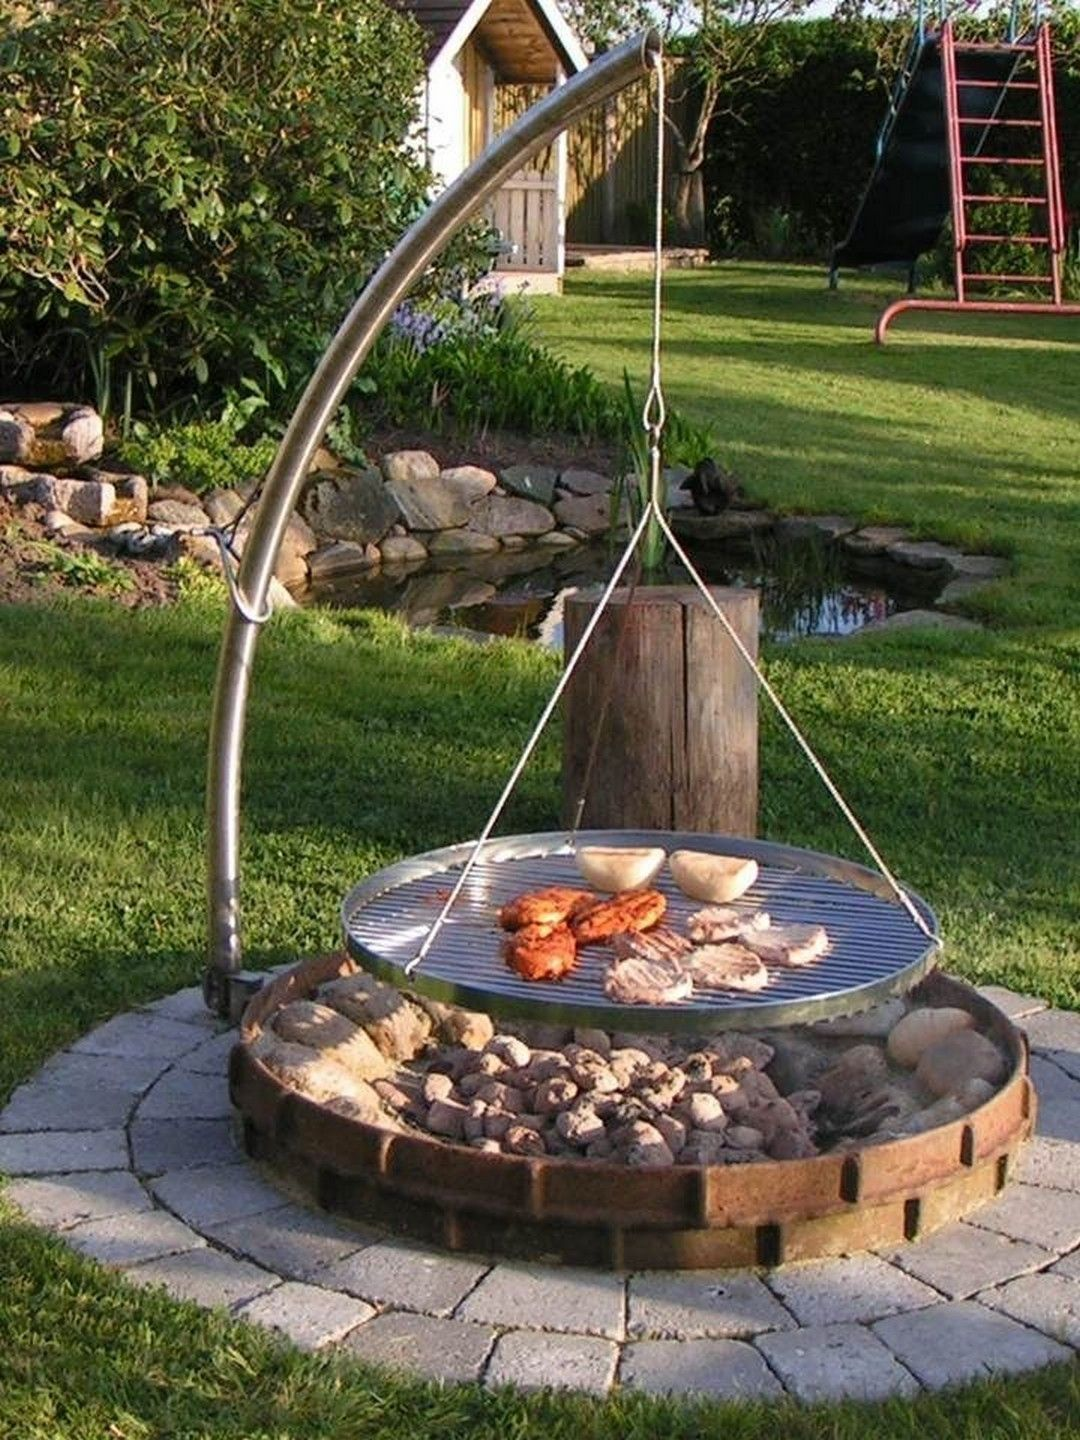 Stunning backyard fire pit patio design www.housenliving .... #atember ... - Elaine